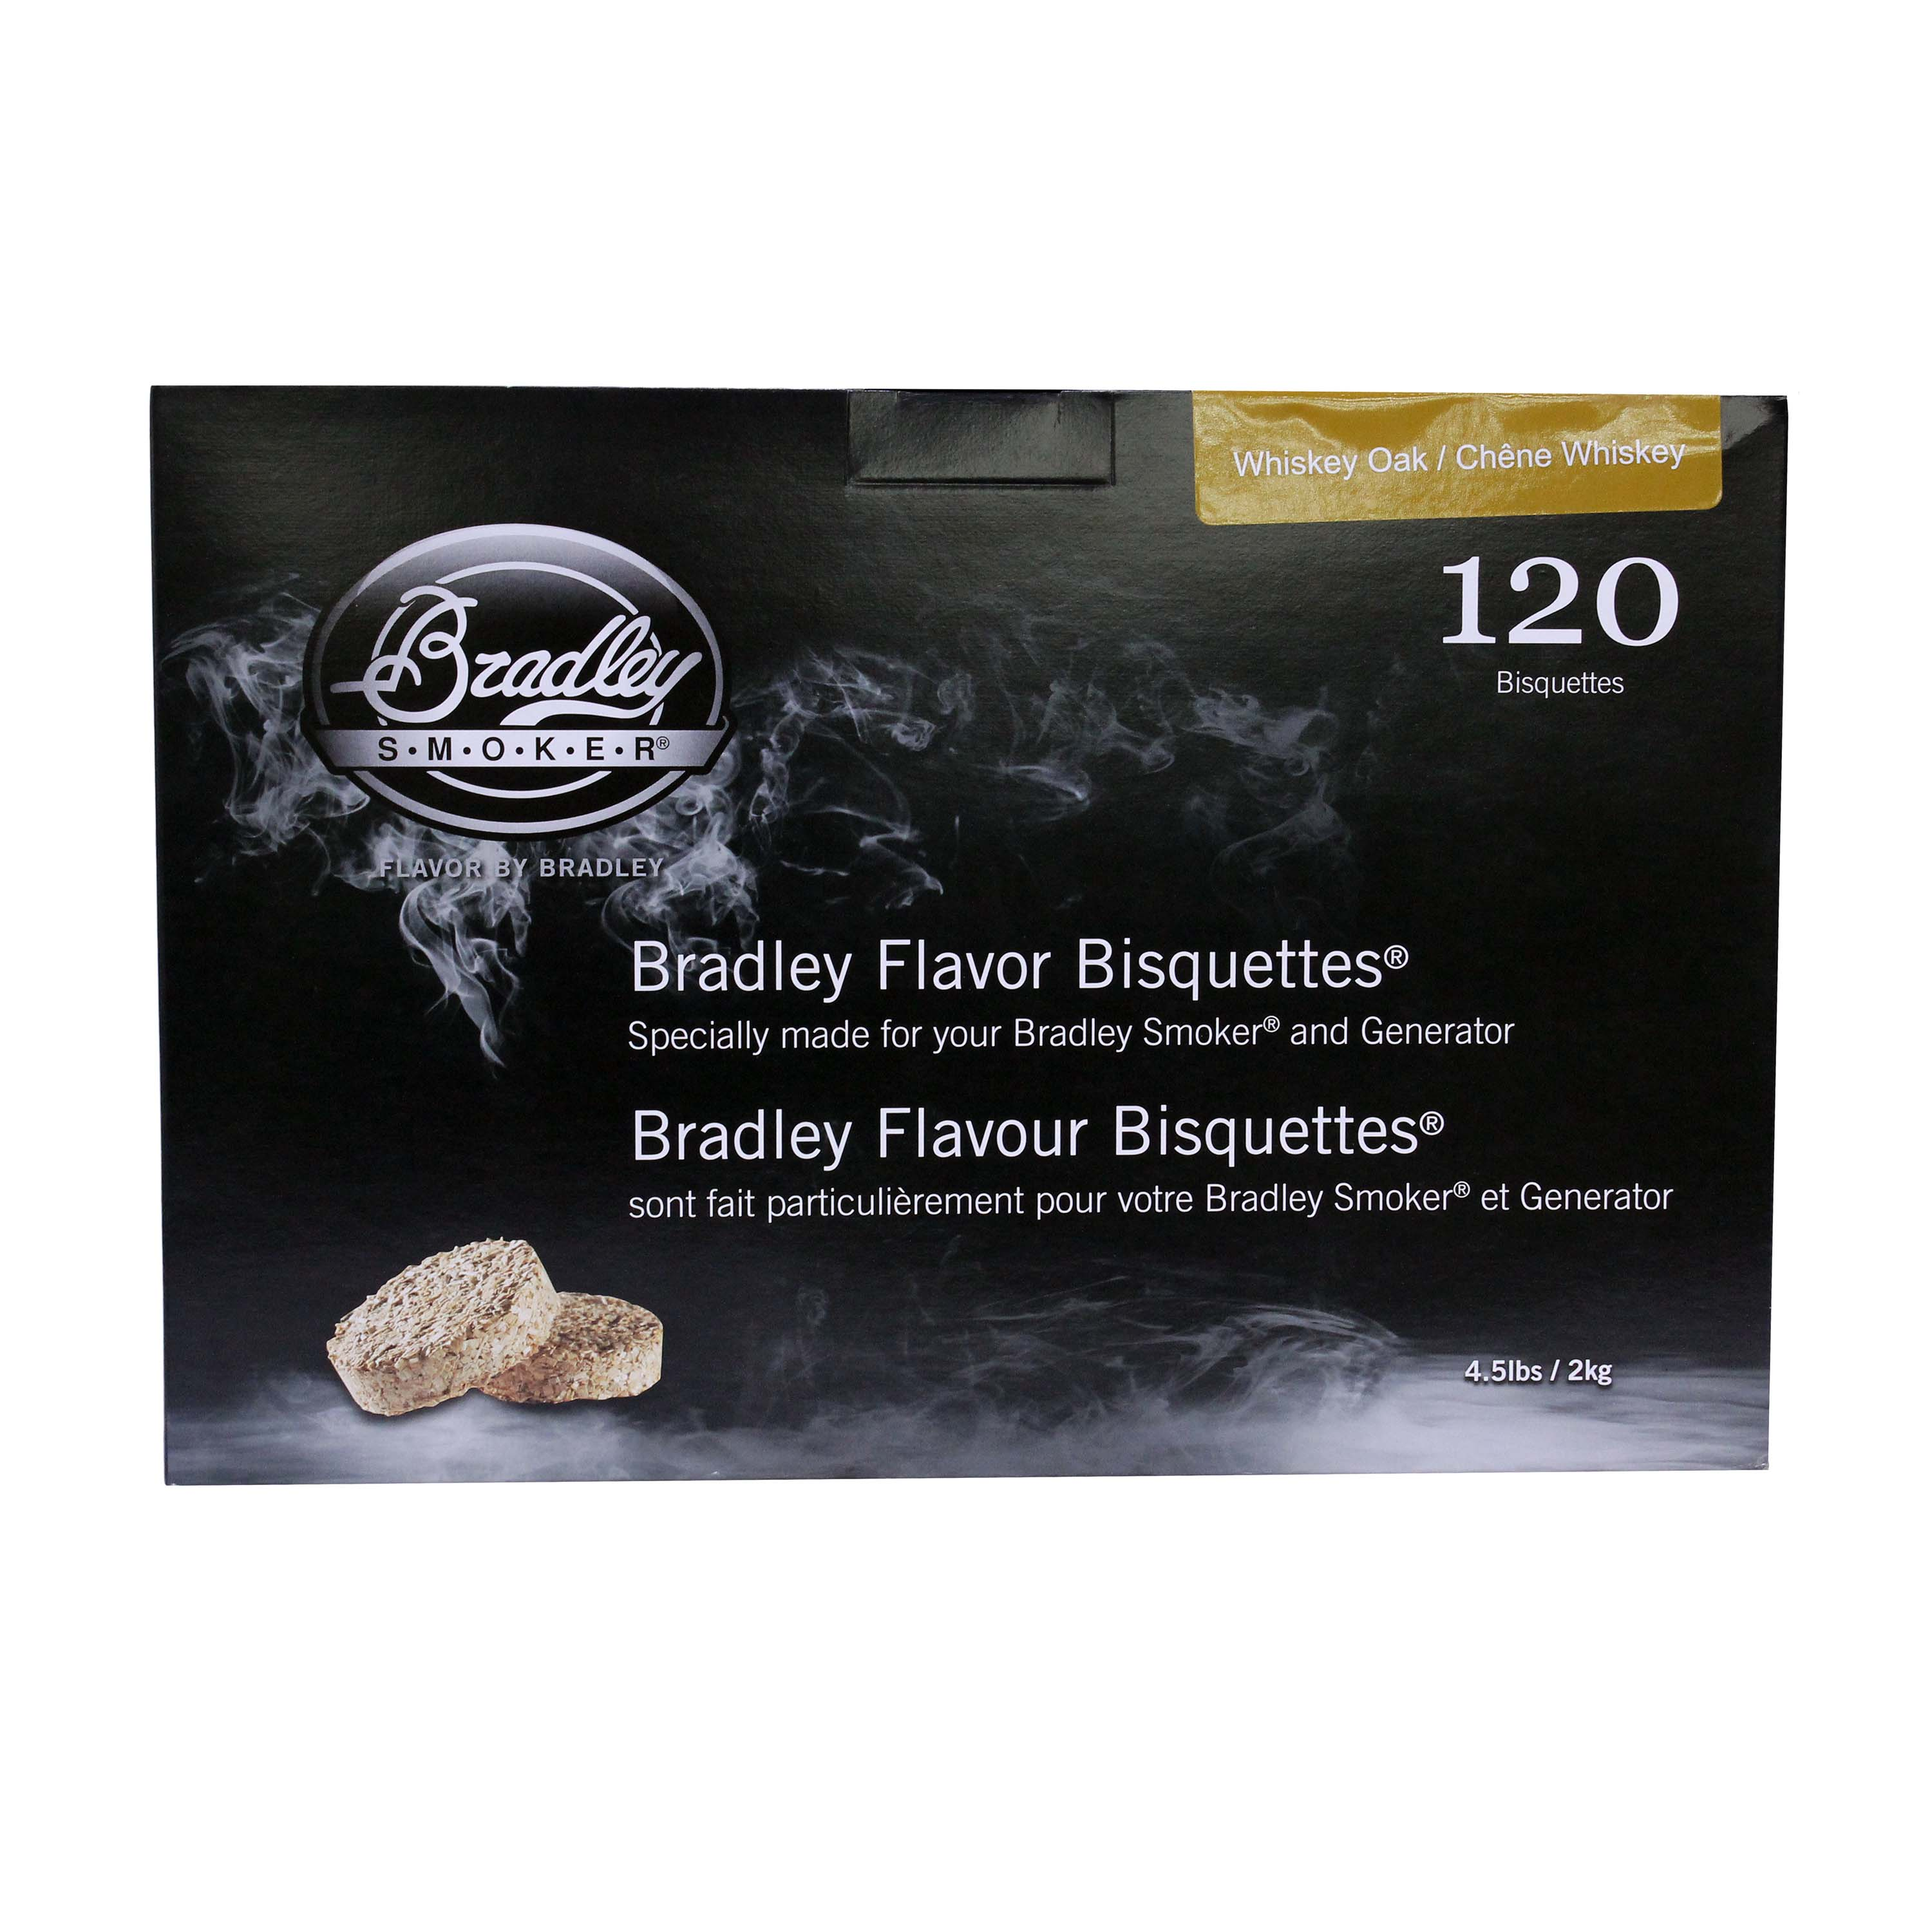 Bradley Smokers Smoker Bisquettes Whiskey Oak Special Edition, 120 Pack